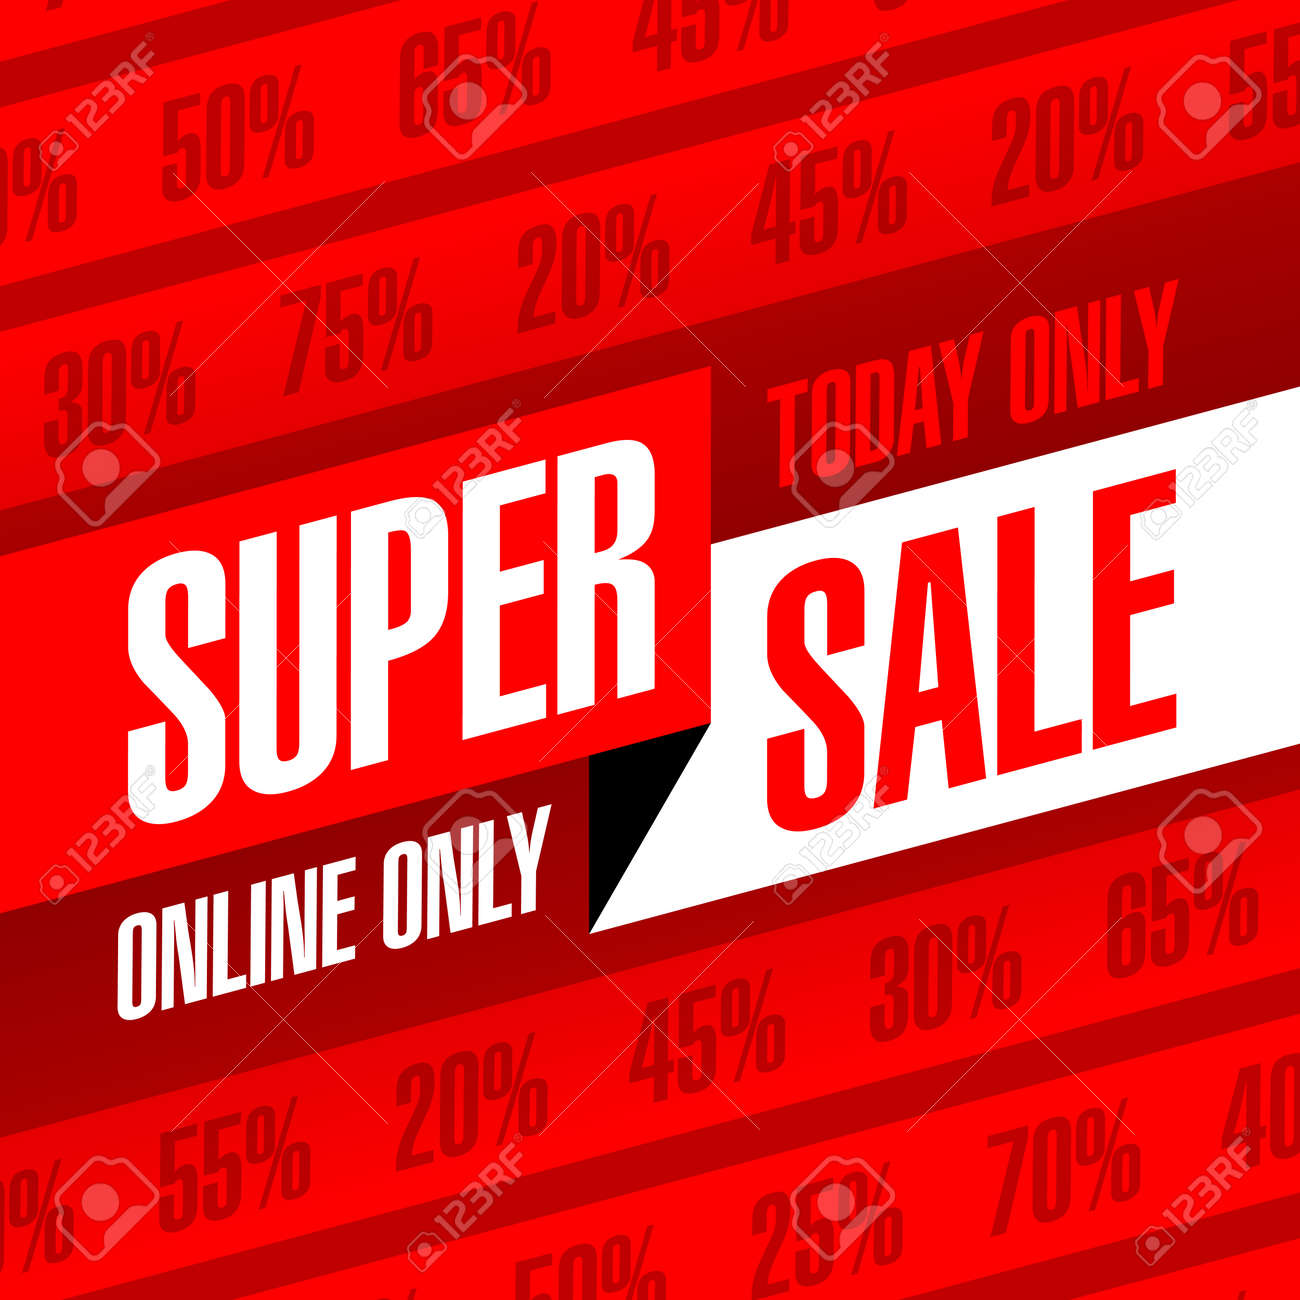 1fad21a1f03e Today And Online Only Super Sale Banner. One Day Deal